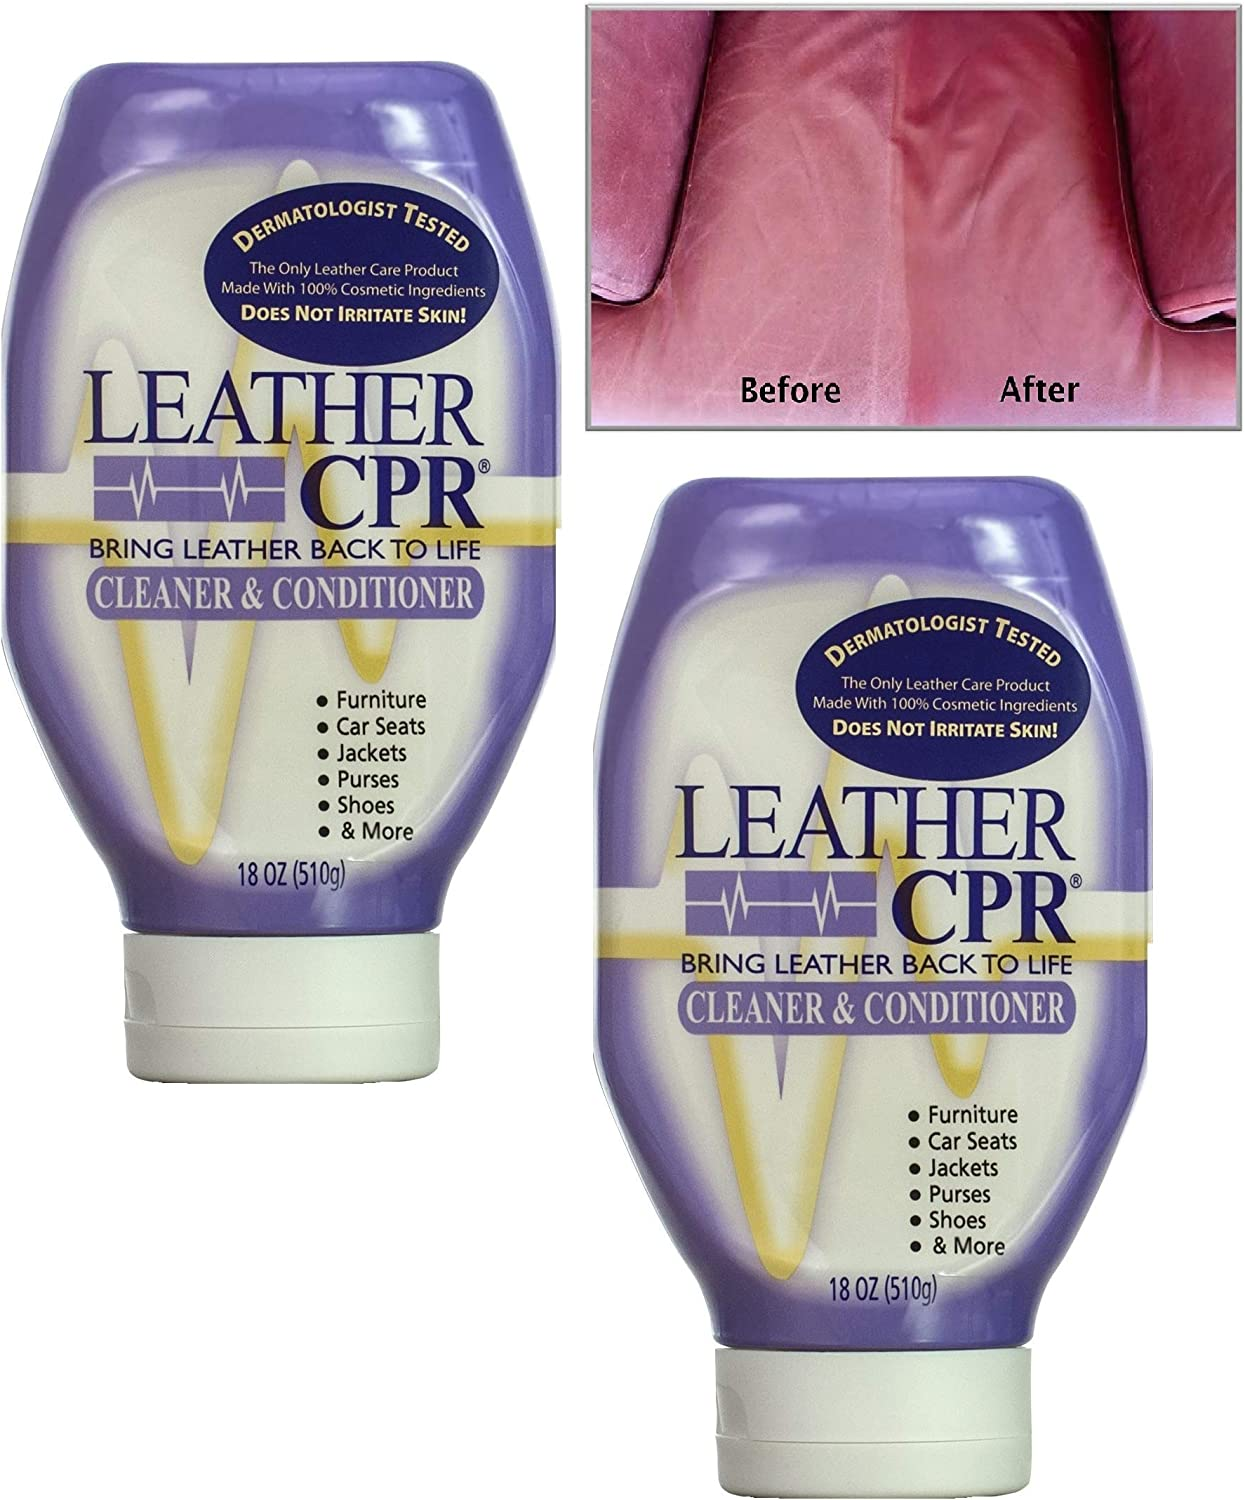 CPR - best leather conditioner